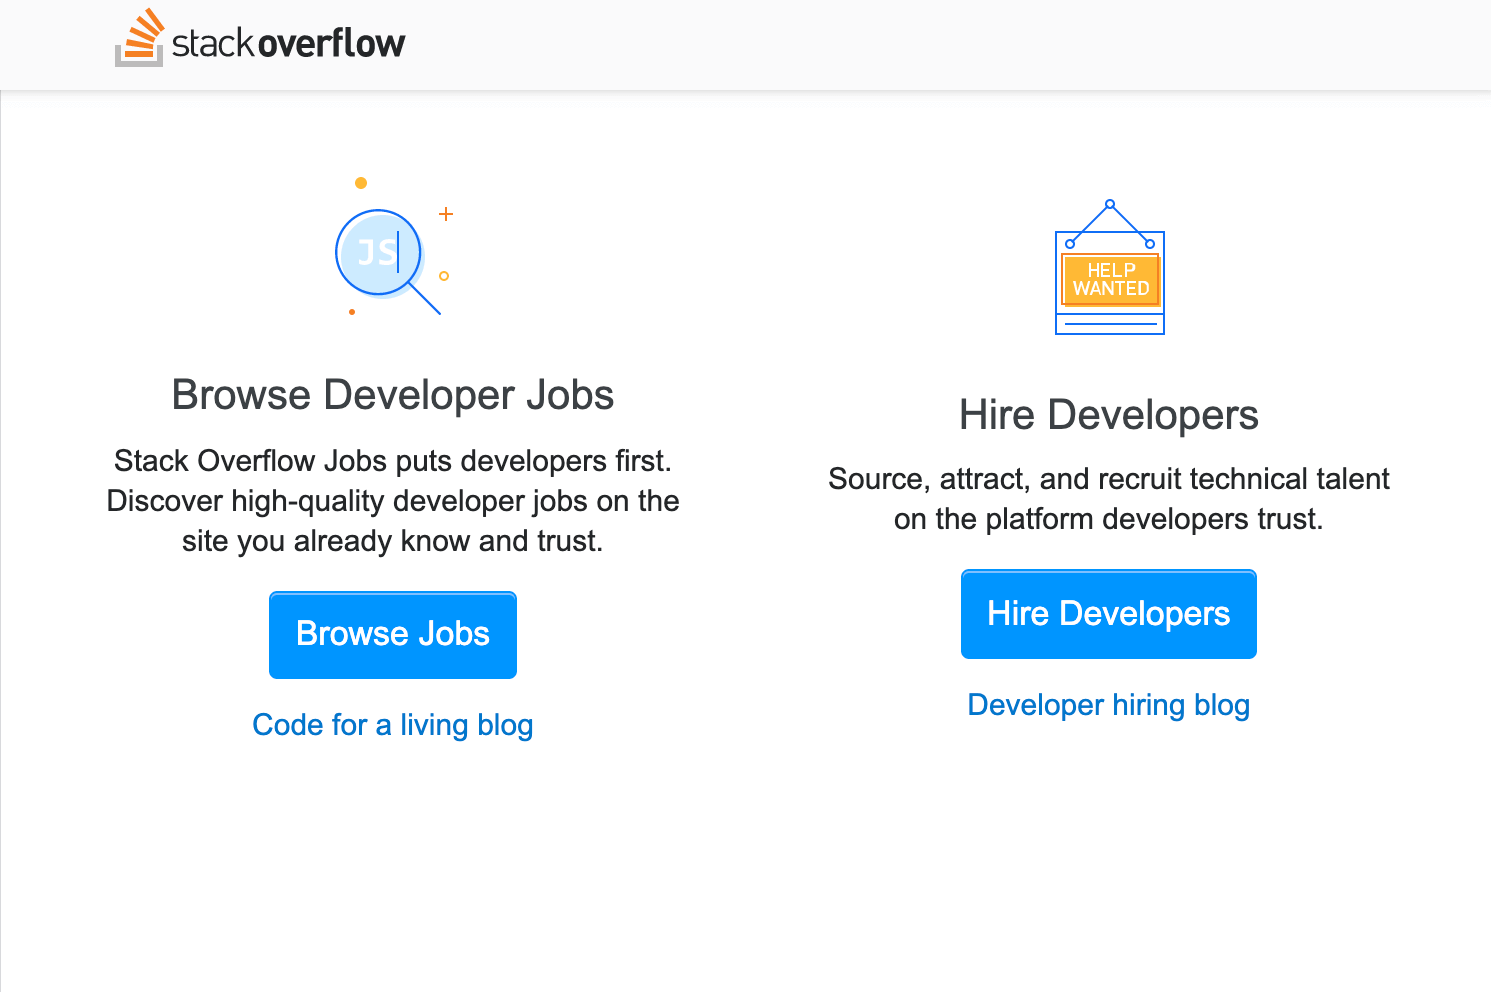 Stack overflow - freelancing jobs site for software developers